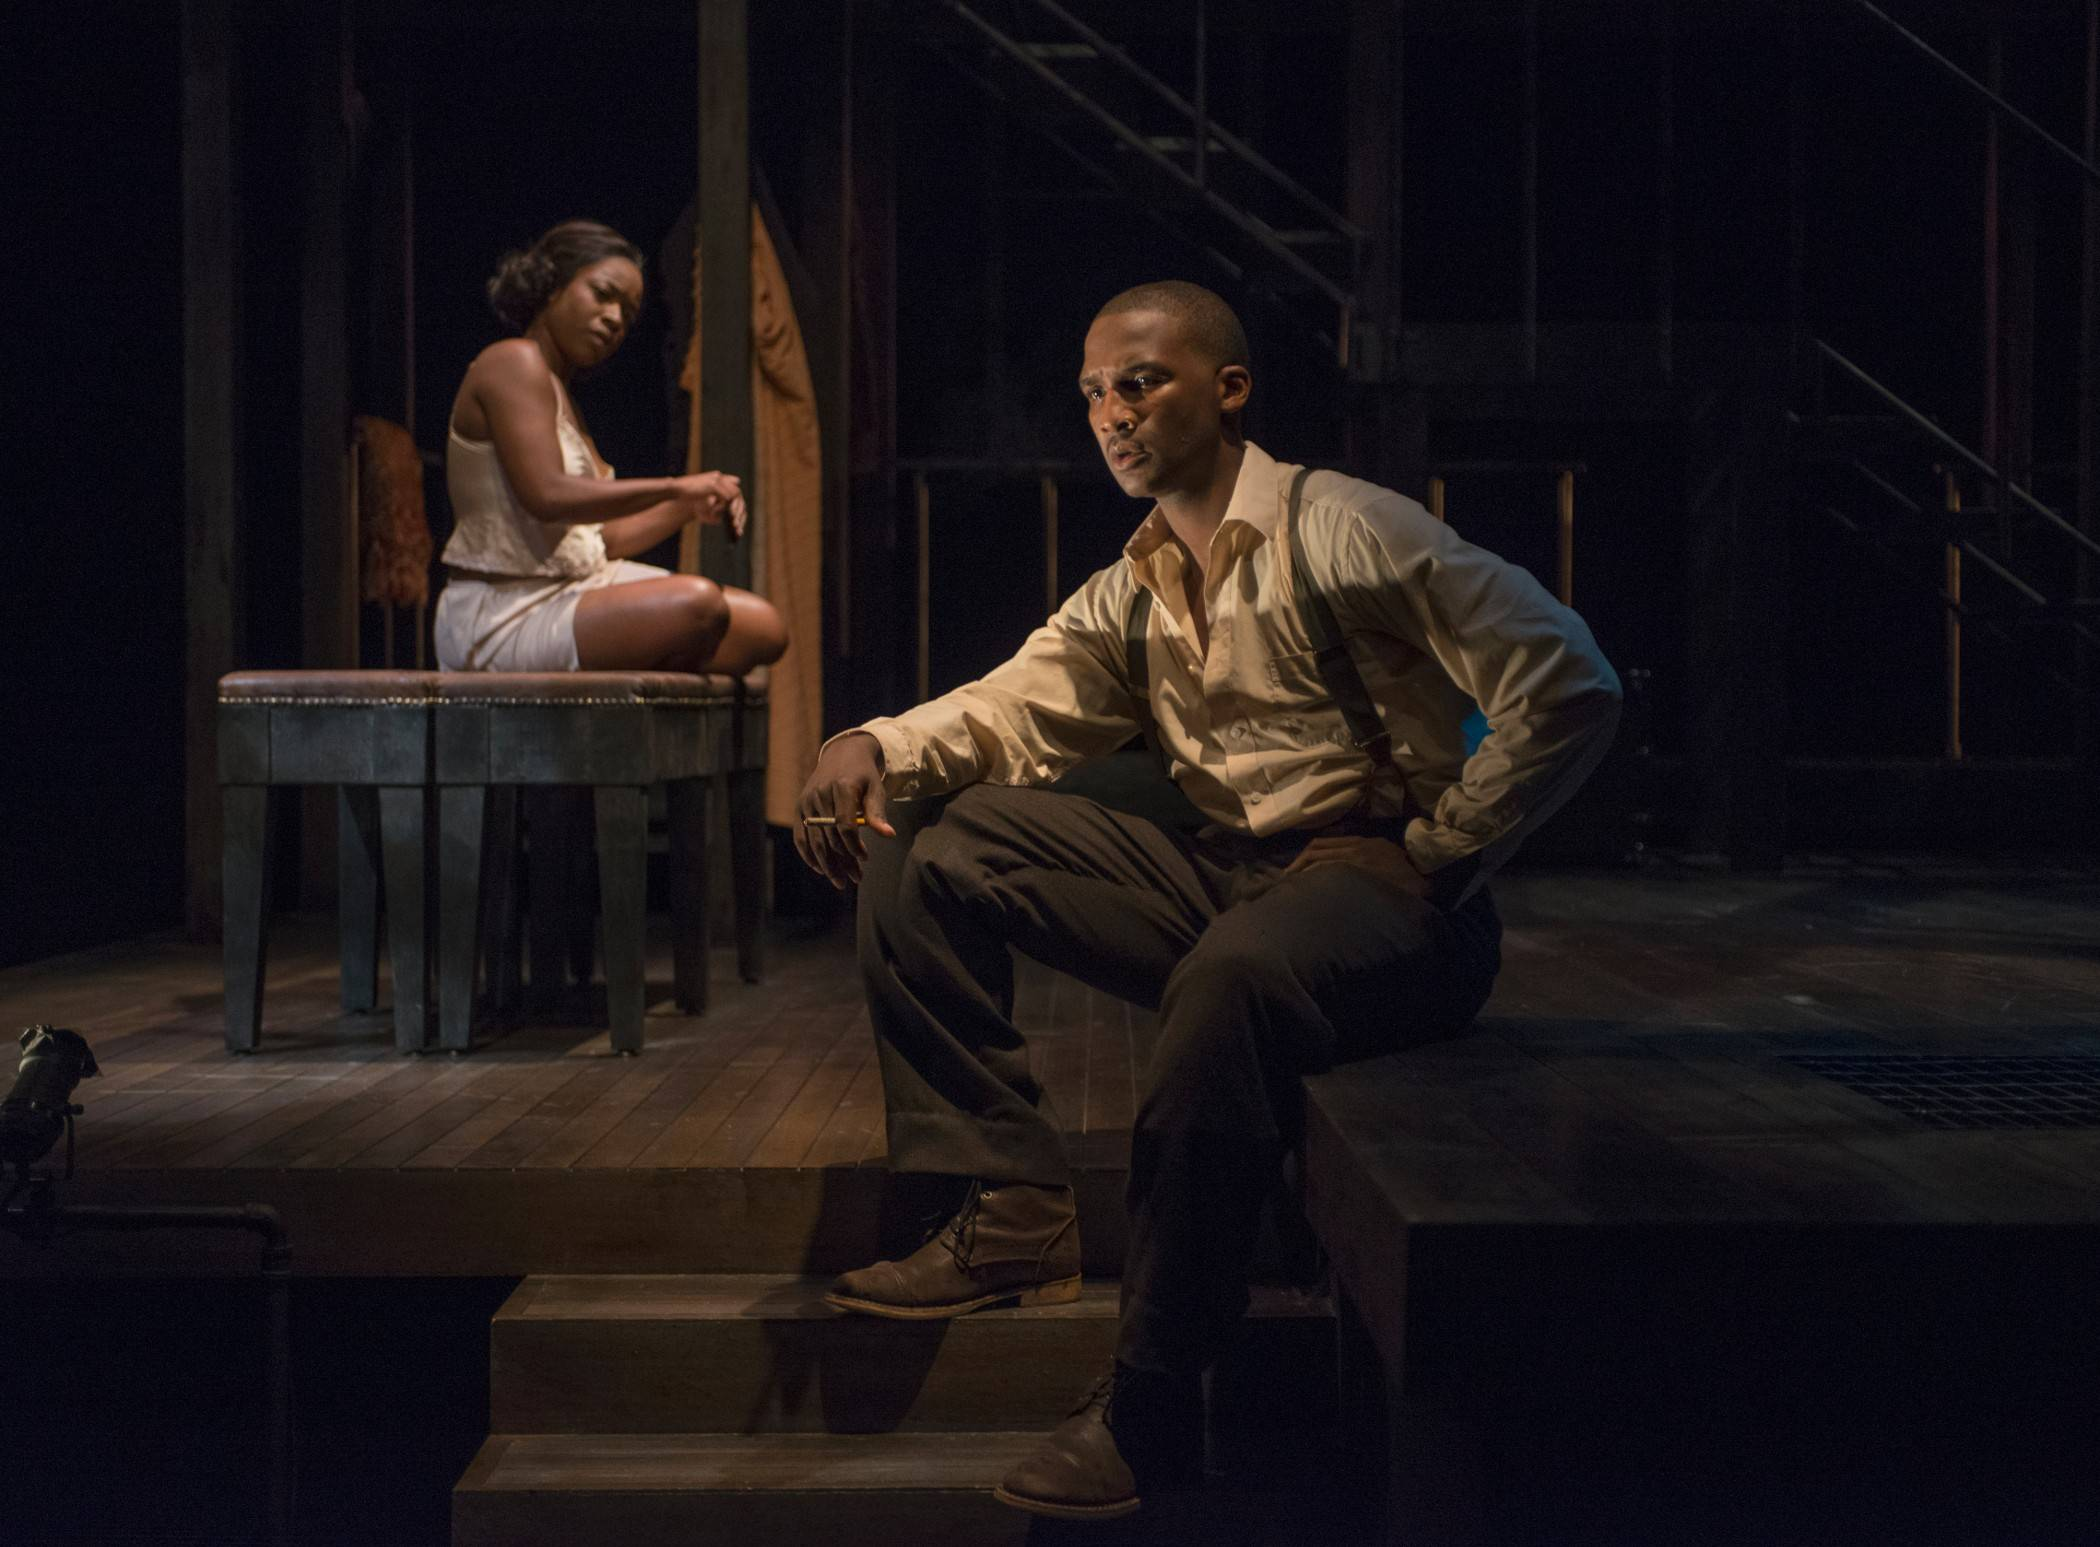 'Native Son' a remarkable adaptation of a classic